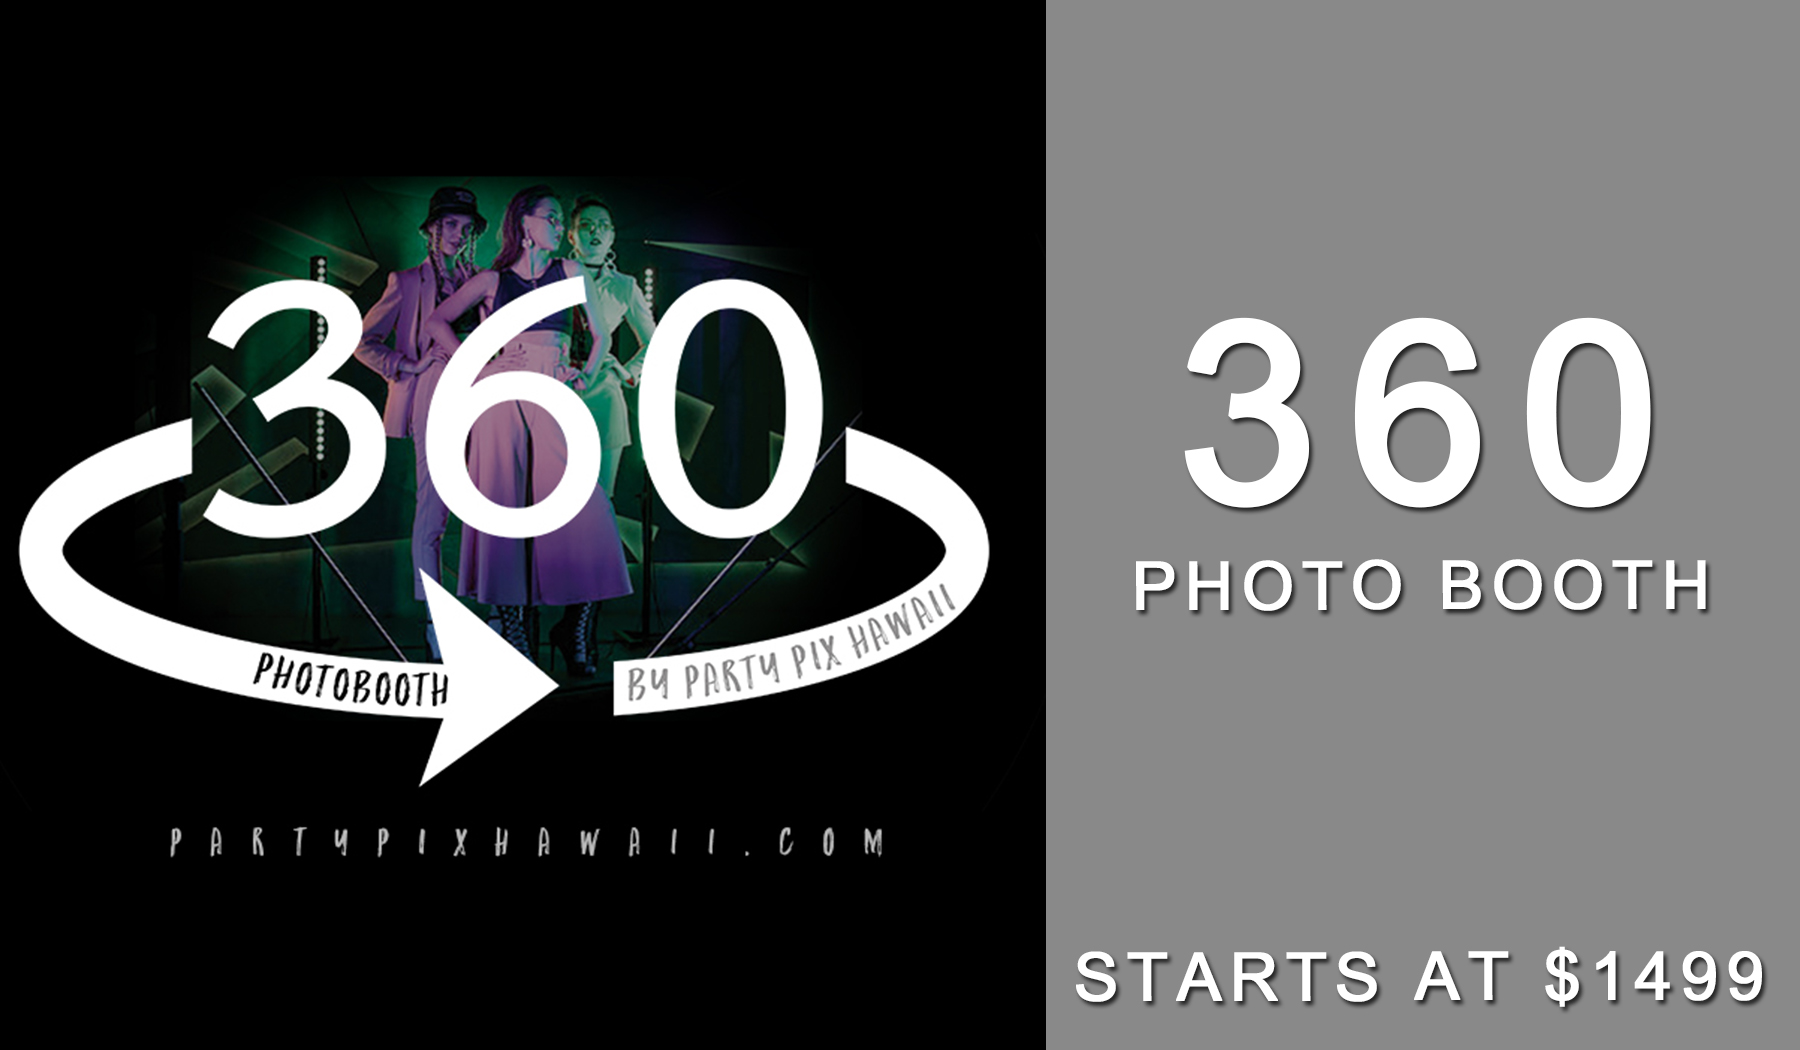 360 Photo Booth